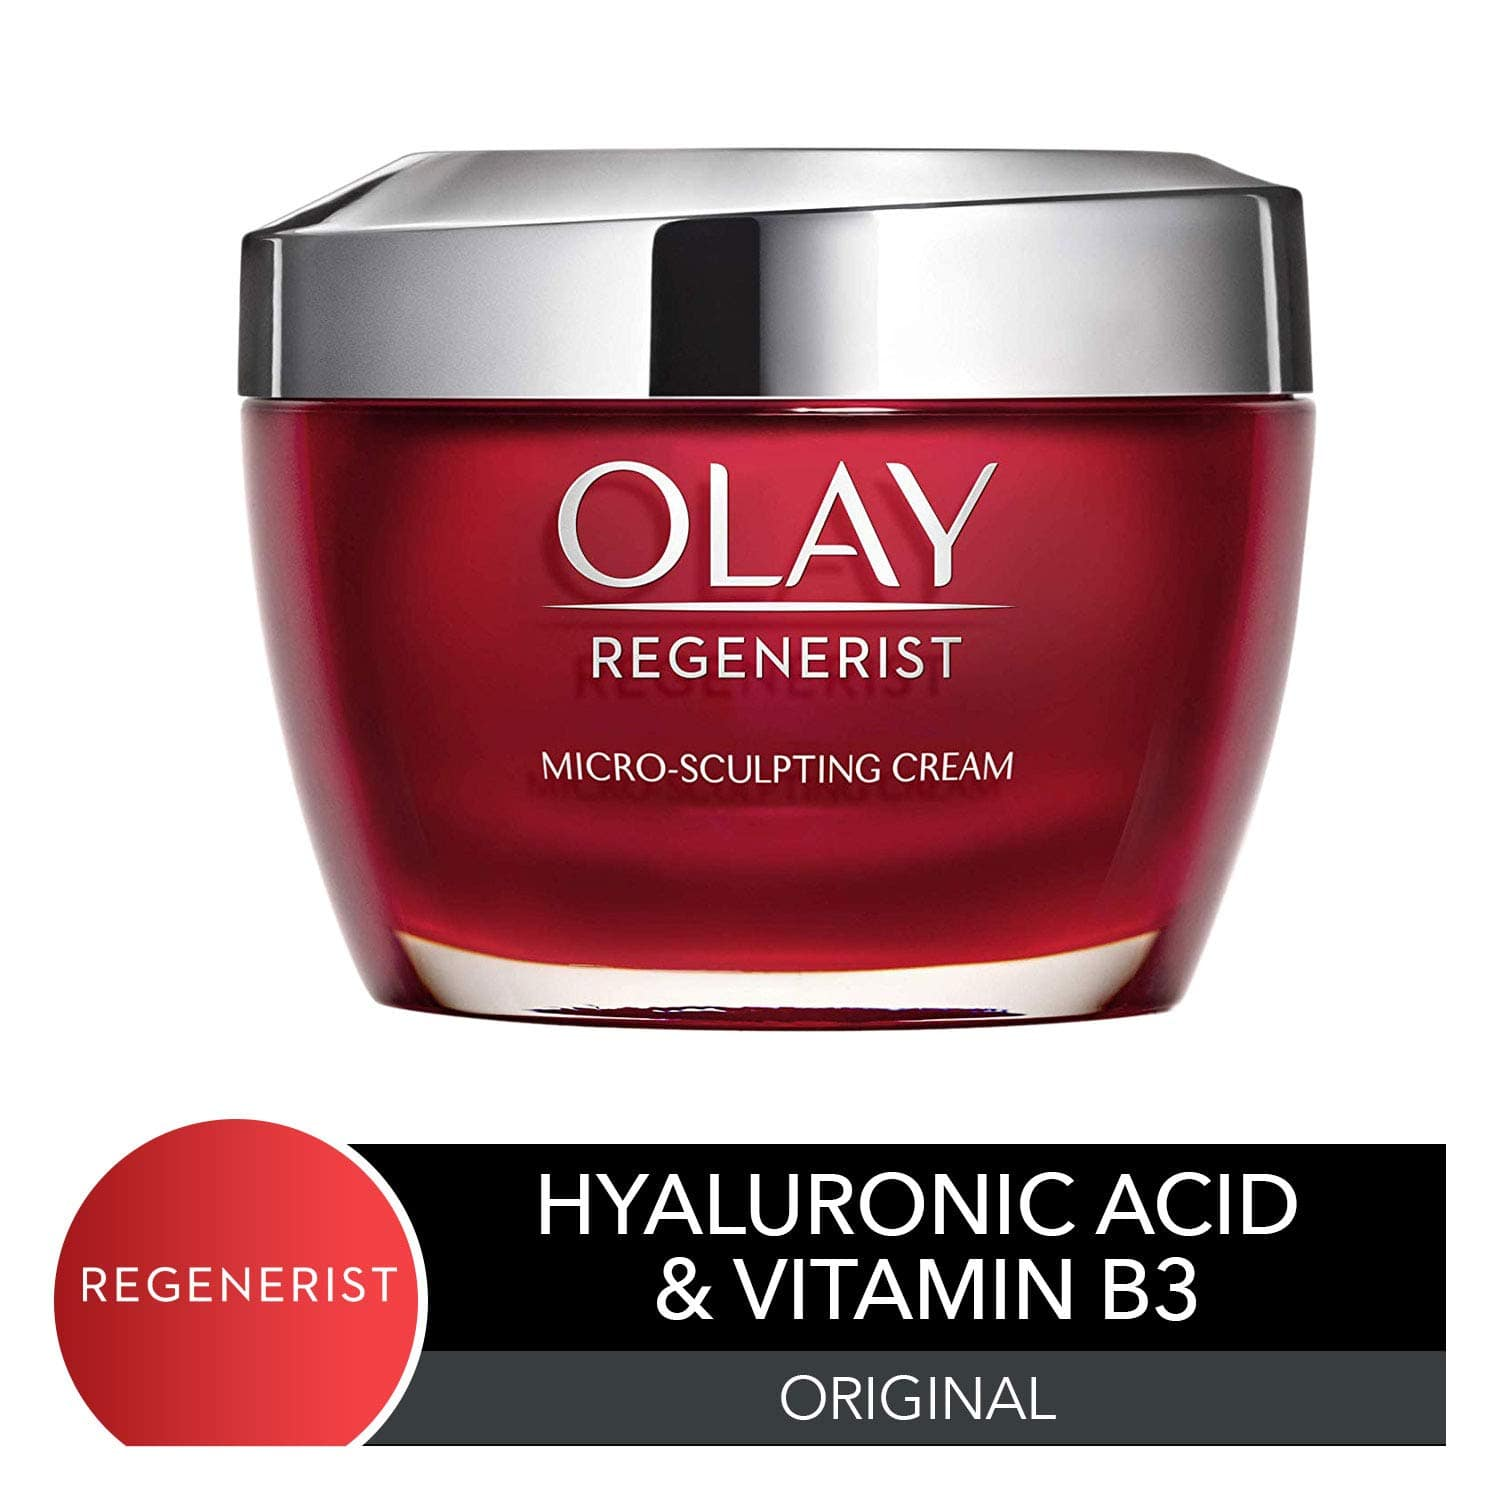 Amazon: Receive $5 Amazon eGift Card with purchase of 2 Eligible Items from Amazon Olay Collection